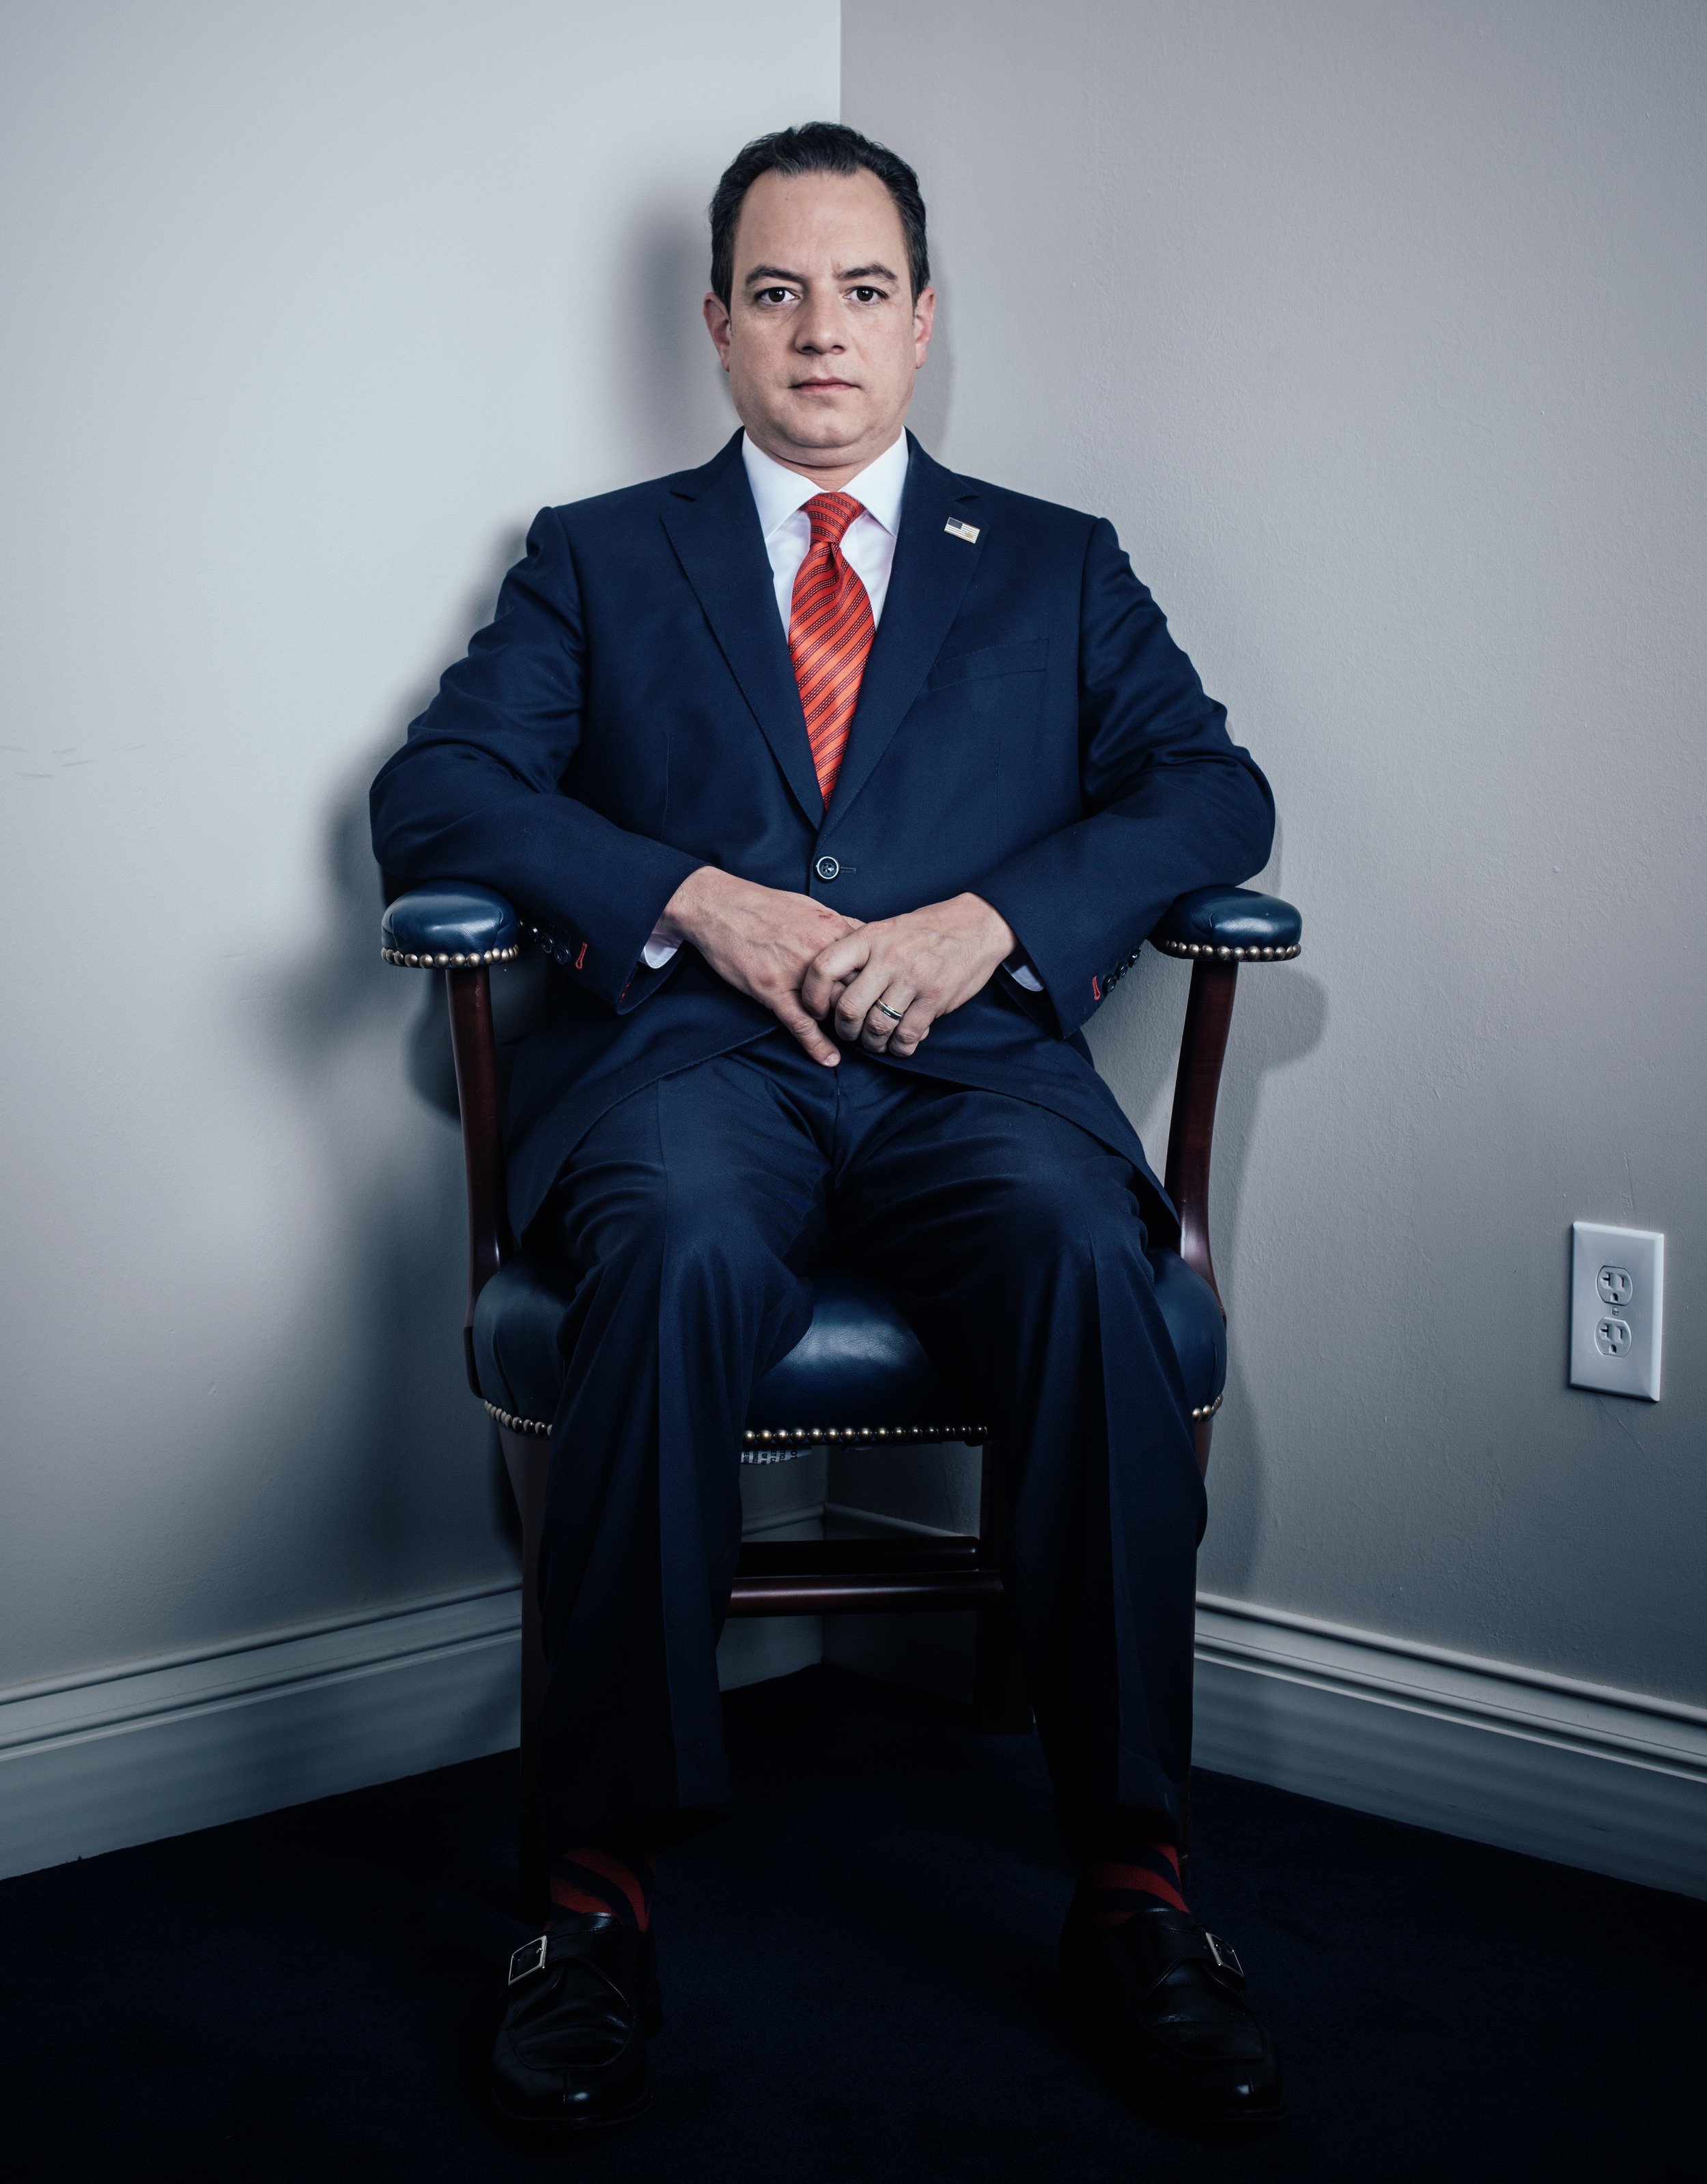 RNC Chairman Reince Priebus for TIME